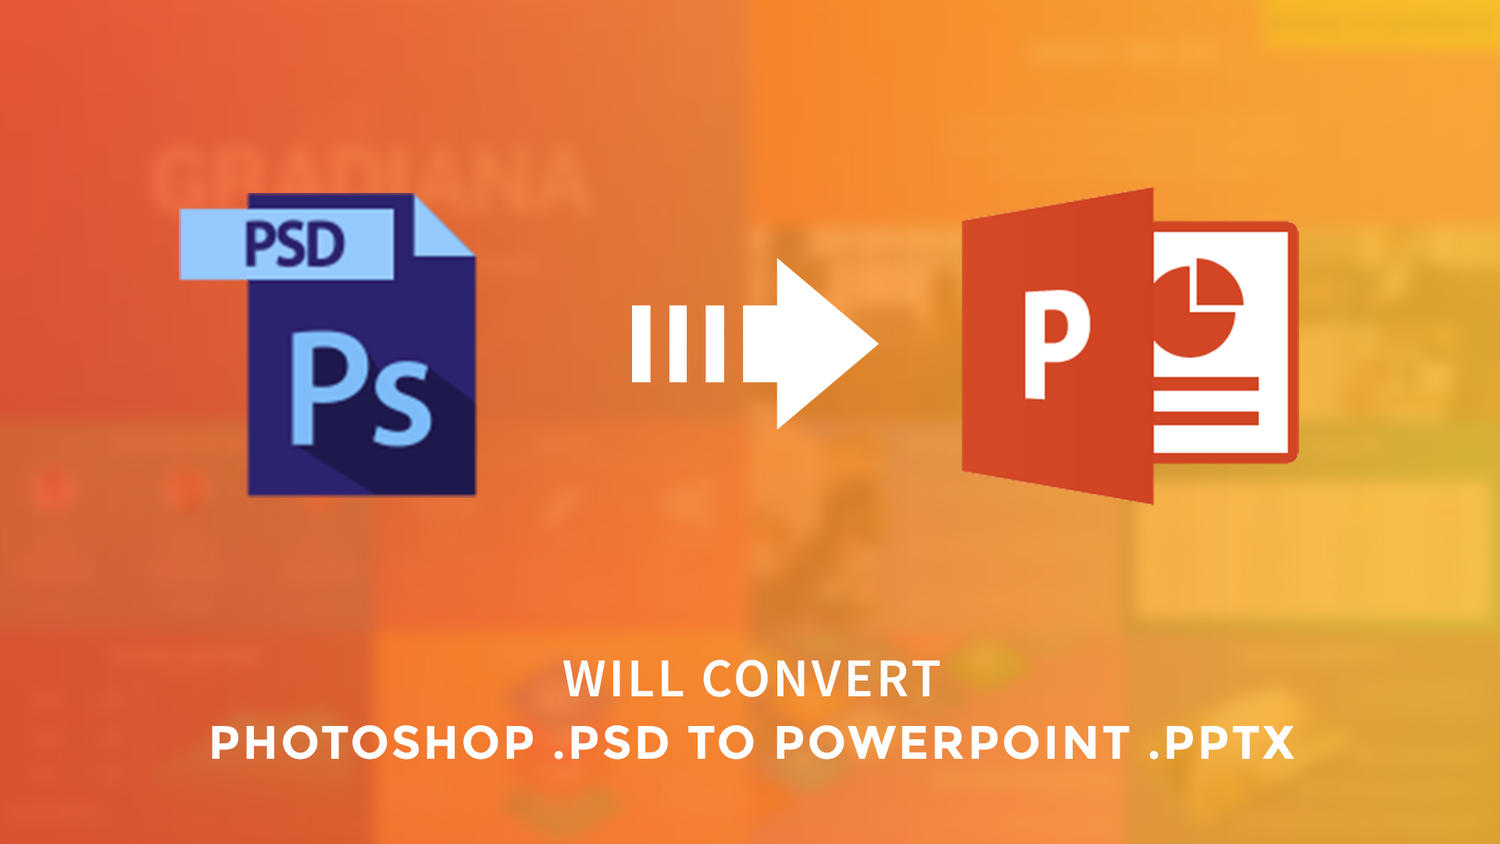 Photoshop PSD to PowerPoint Presentation PPTX by arvaone on Envato ...